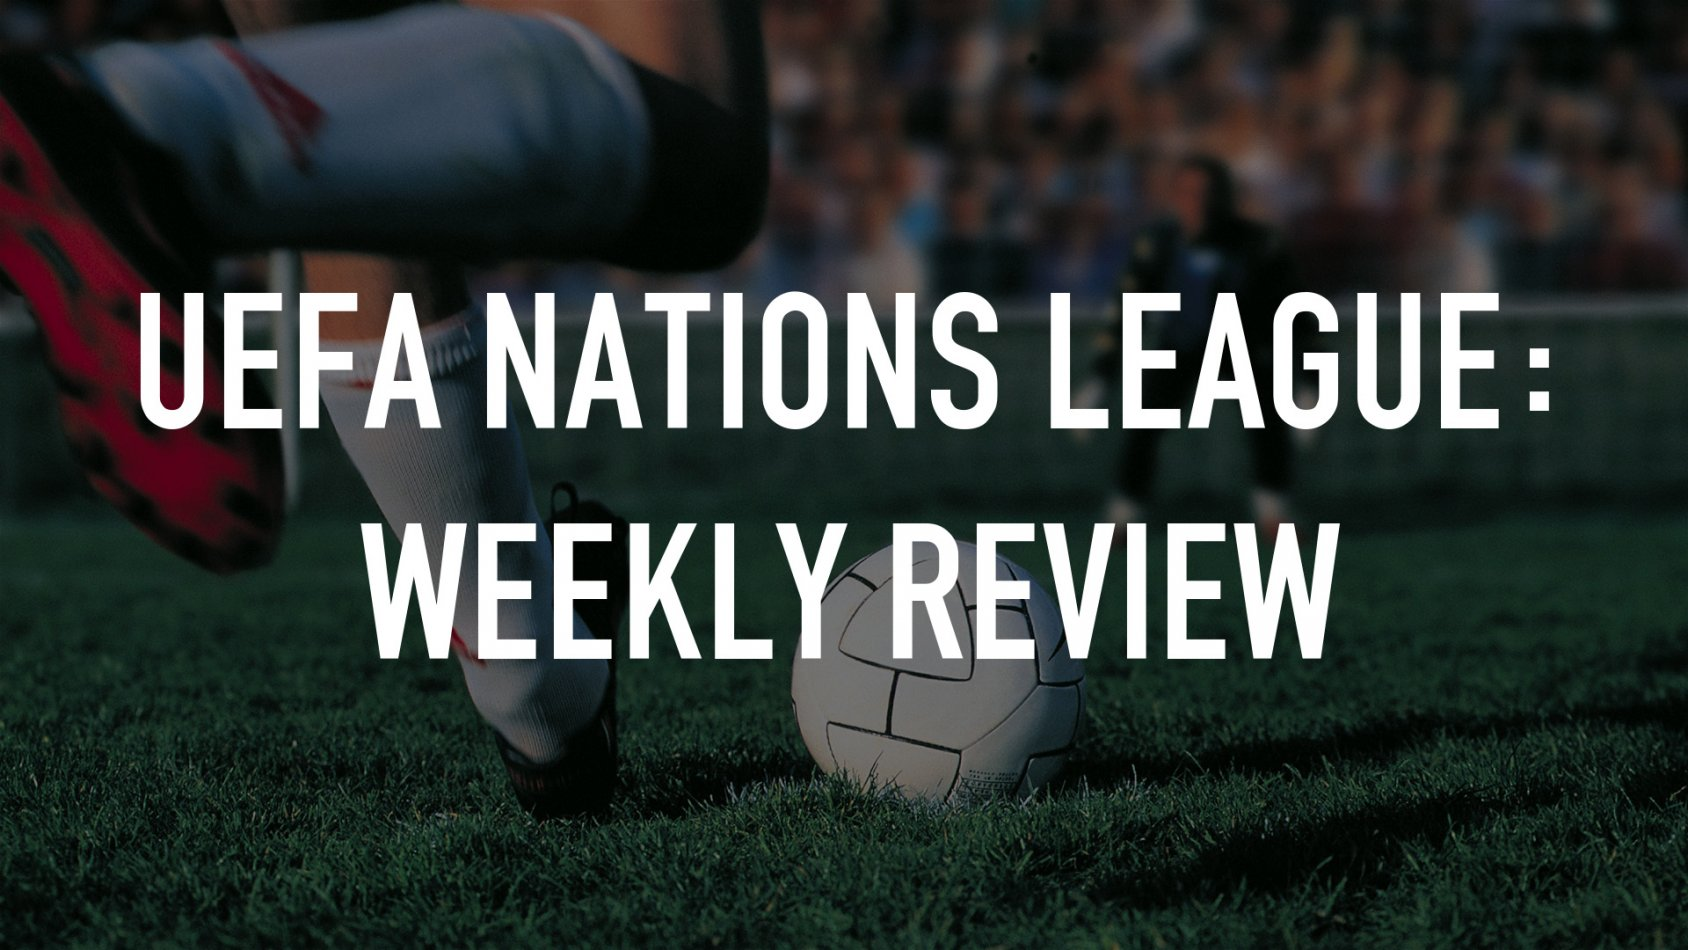 UEFA Nations League: Weekly Review